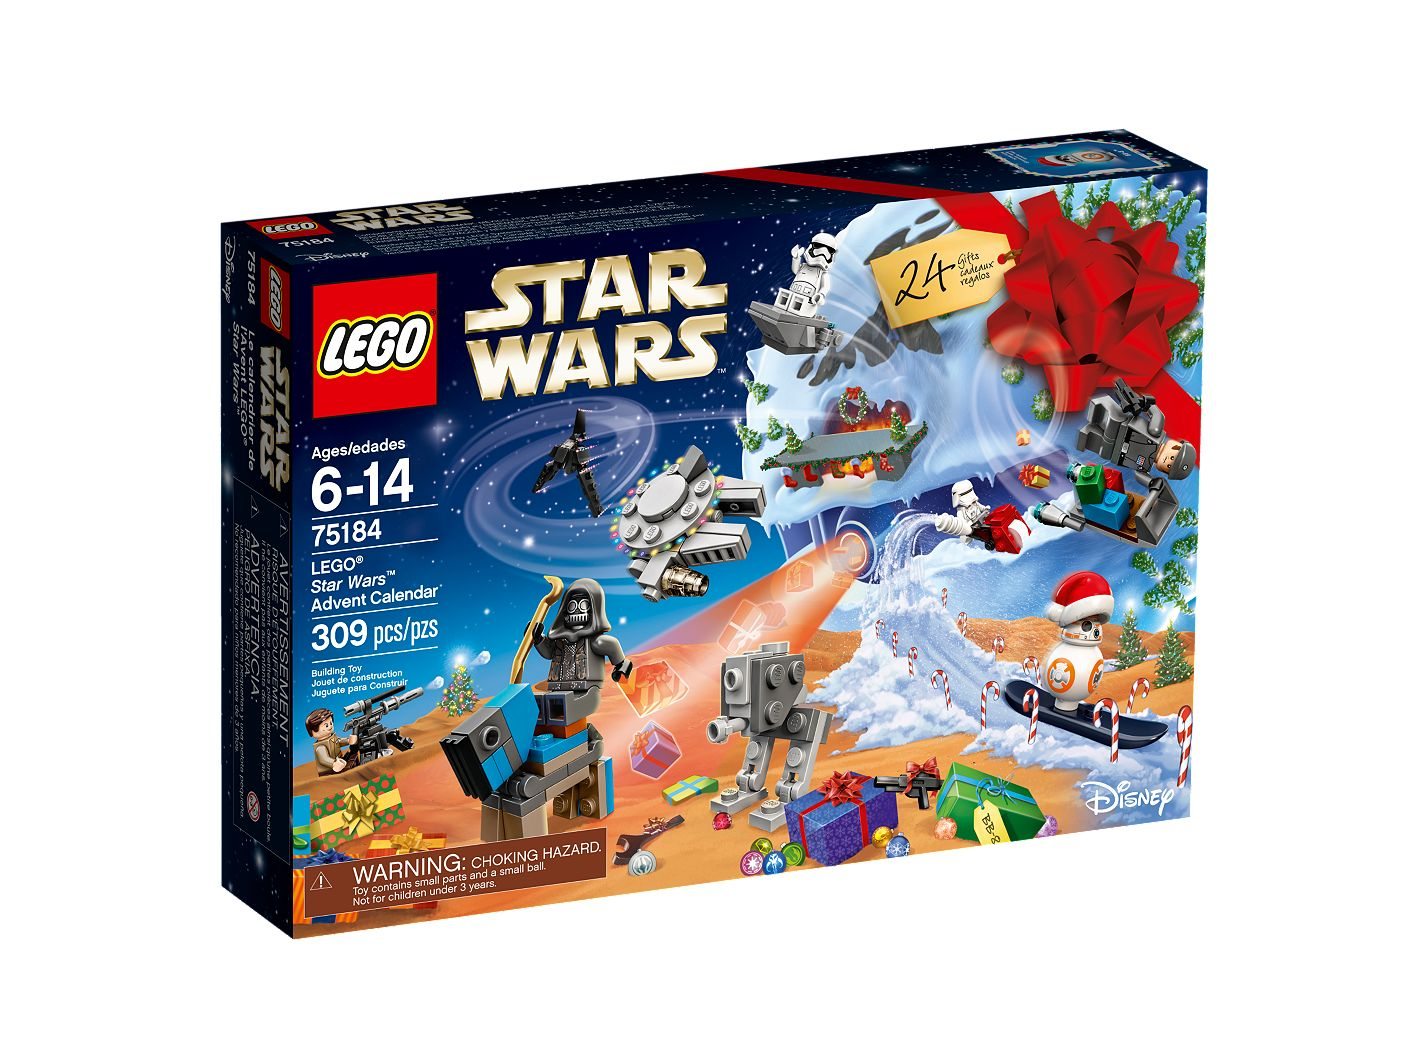 Calendrier Avent Lego Star Wars 2019.Lego Star Wars Advent Calendar 75184 Star Wars Buy Online At The Official Lego Shop Us